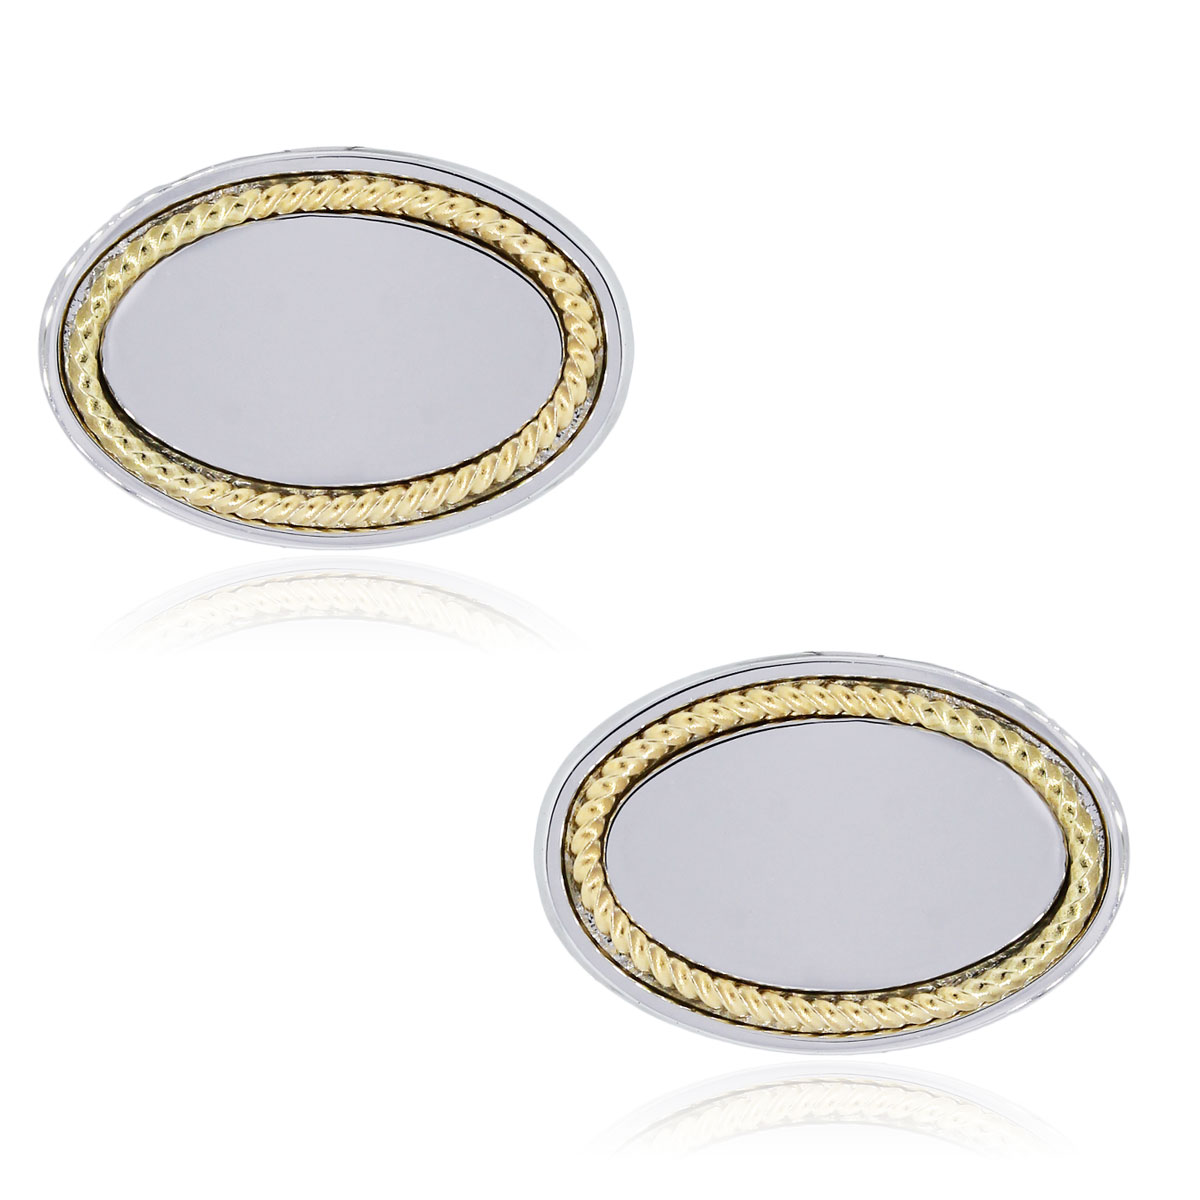 You are viewing these 14k Yellow Gold and Sterling Silver Oval Cuff Links!